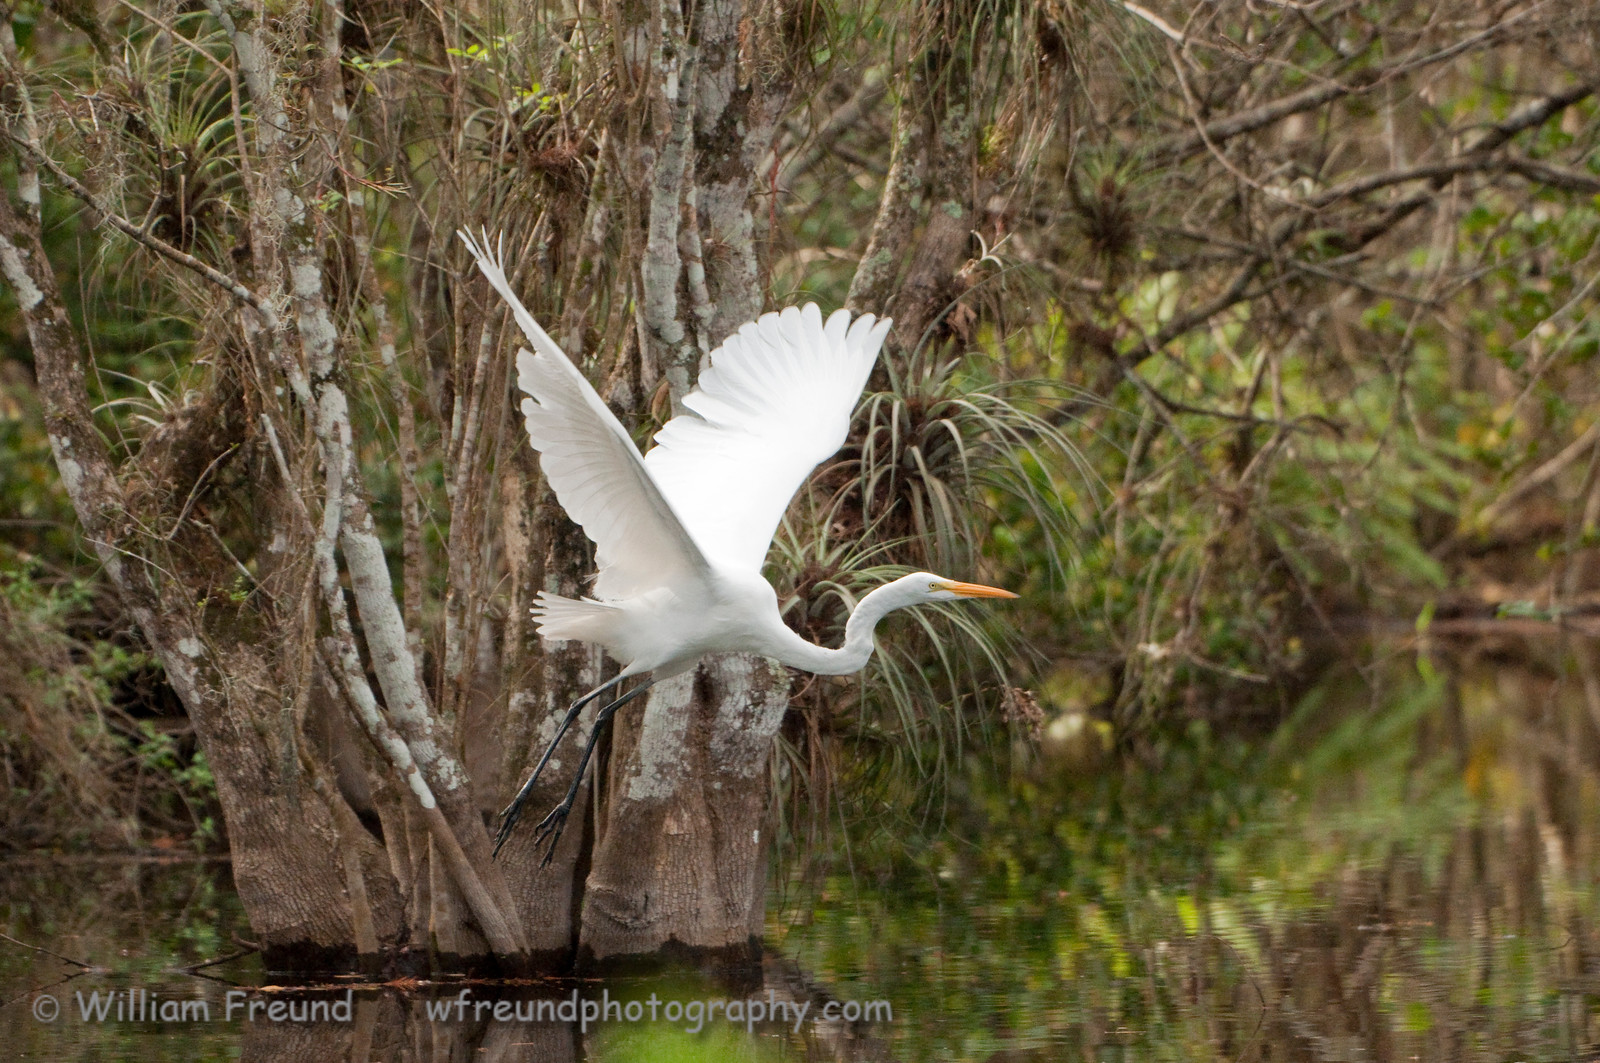 We went to visit Clyde Butcher's gallery in the Big Cypress National Preserve and I caught this Great Egret flying over the pond right next to the gallery.  A great place to visit if you get the chance!